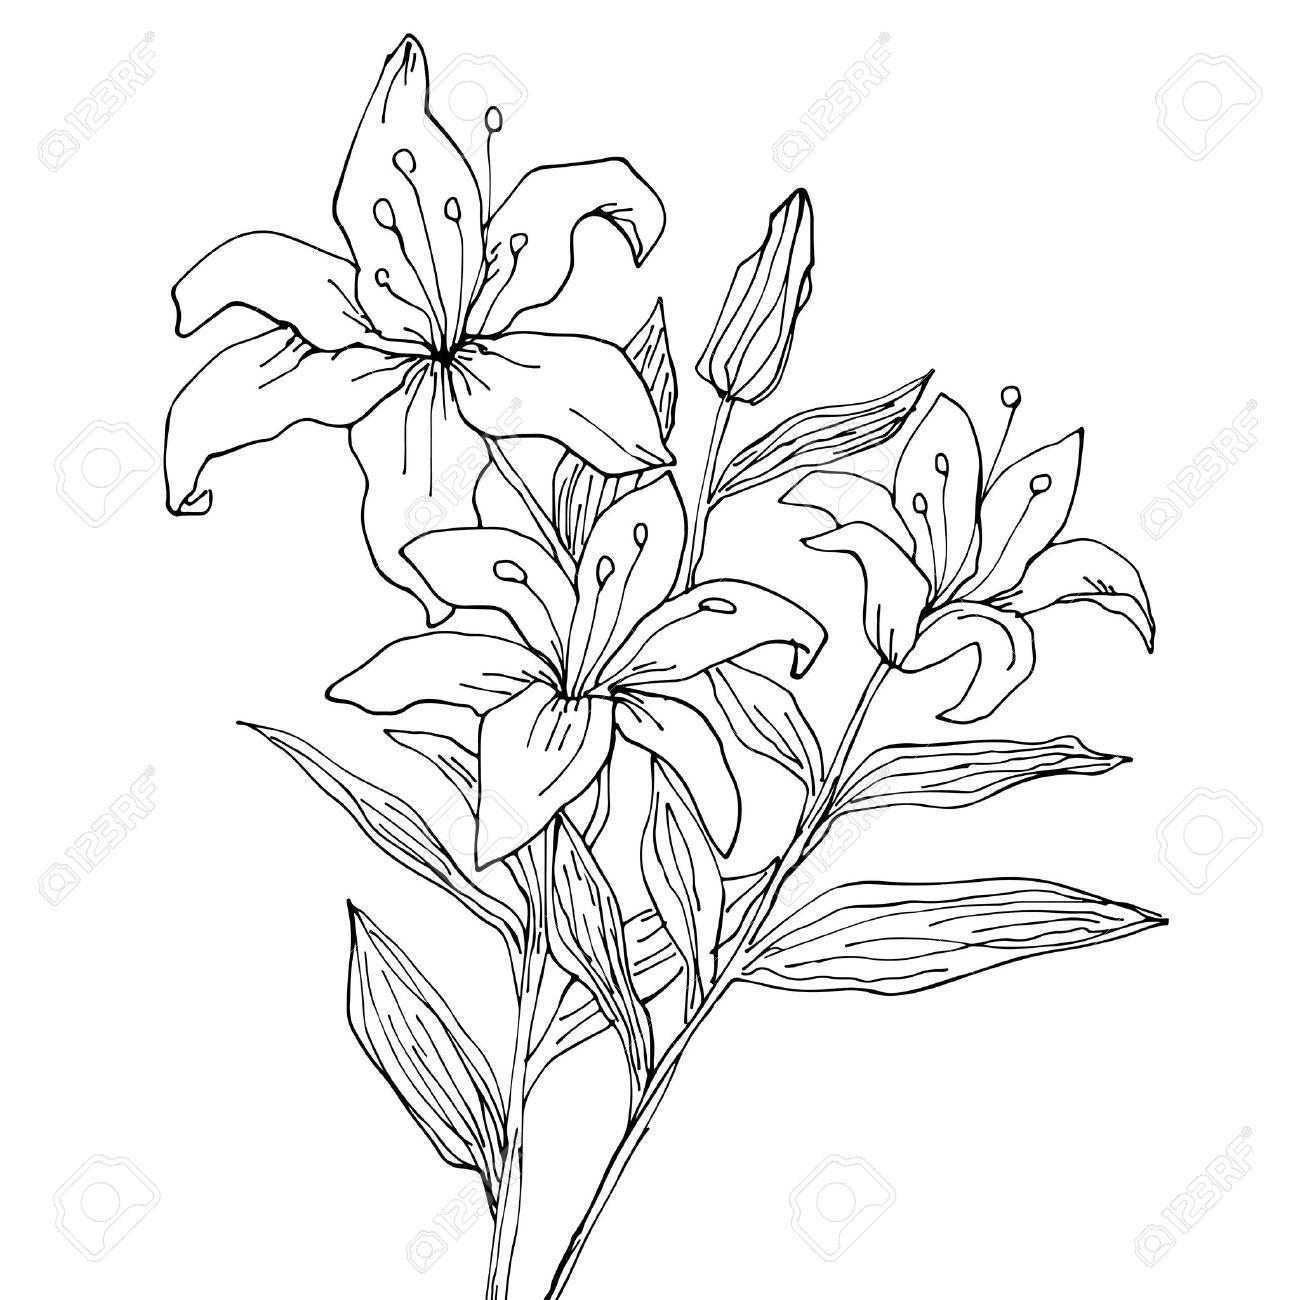 Lily Flowers Isolated Hand Drawing Illustration Royalty Free